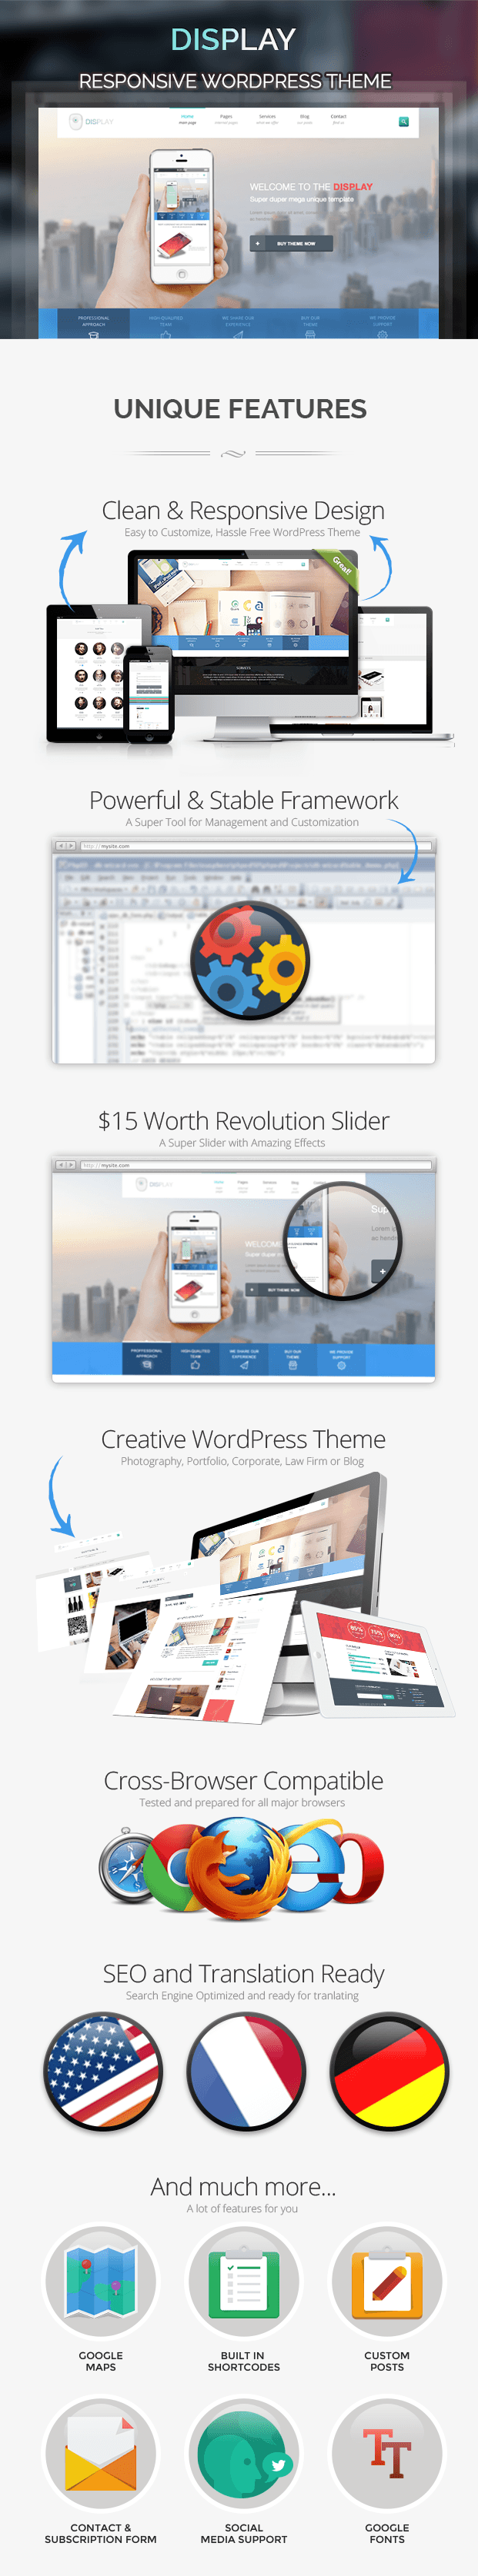 responsive-wp-themes